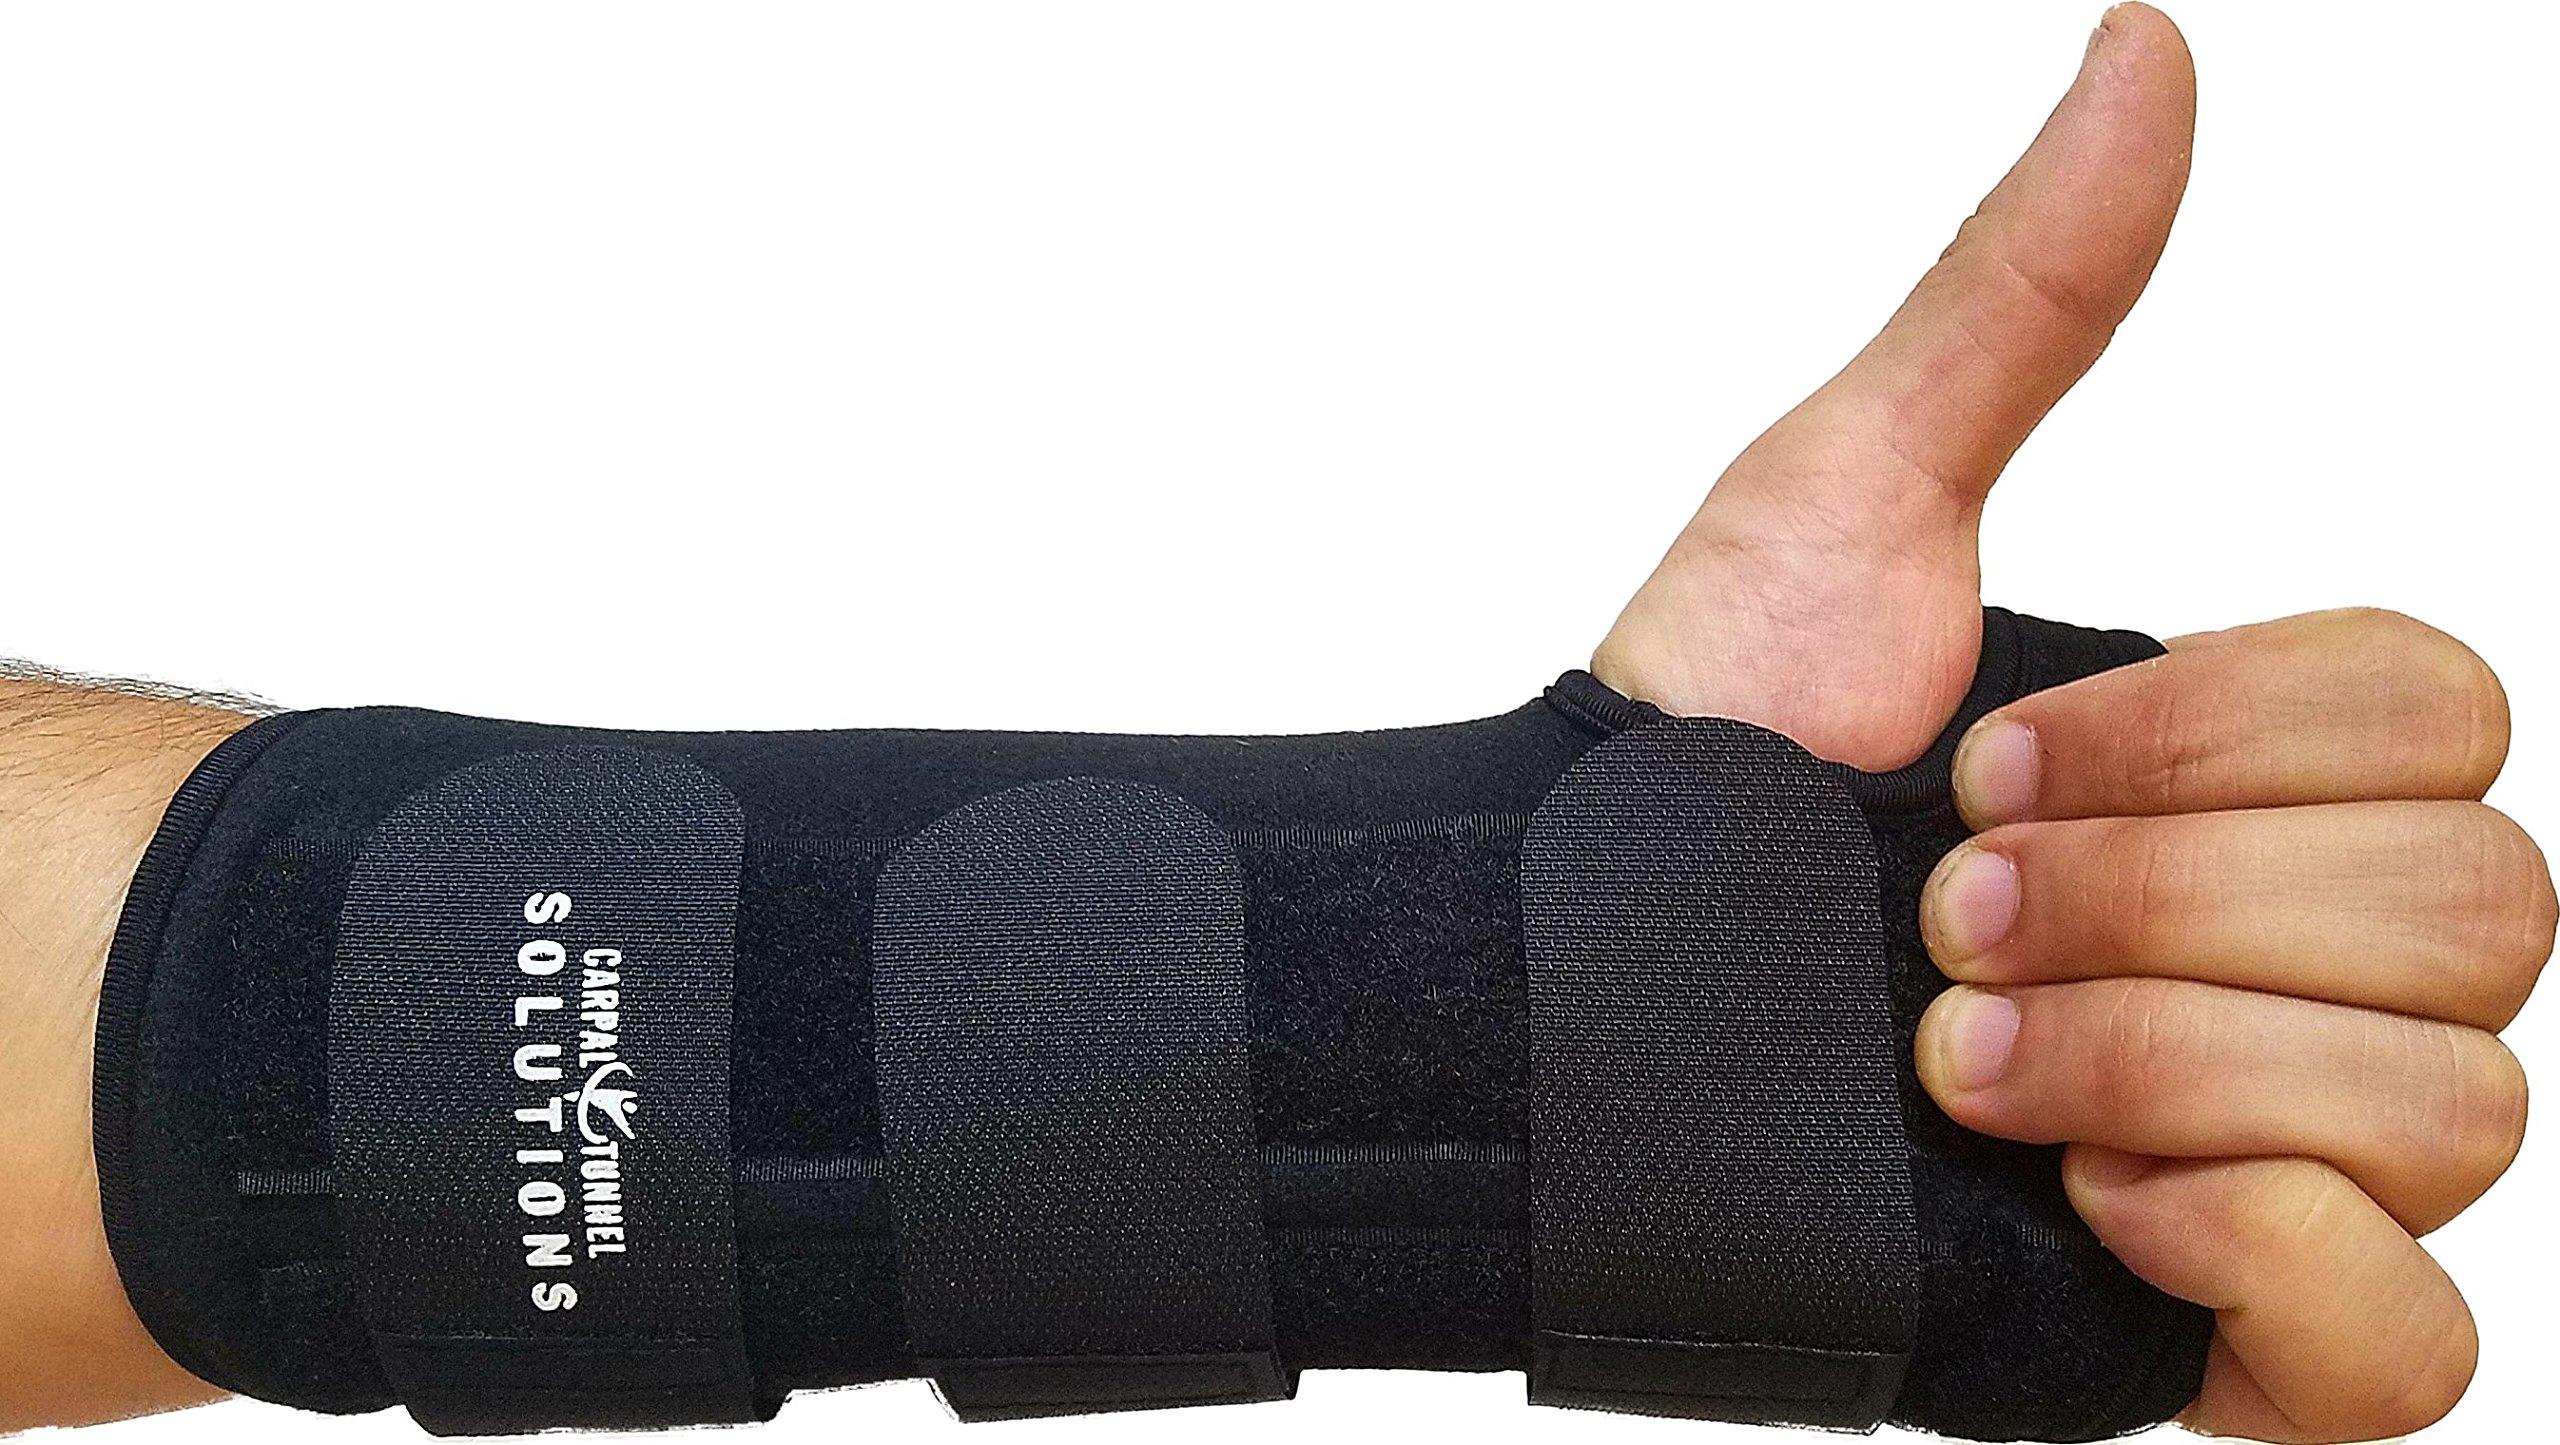 Carpal Tunnel Night Time Wrist Brace for Left Hand By Carpal Tunnel Solutions - RELIEF For RSI, Cubital Tunnel, Tendonitis, Arthritis, Wrist Sprains. Support Recovery & Feel Better NOW (Left Hand)